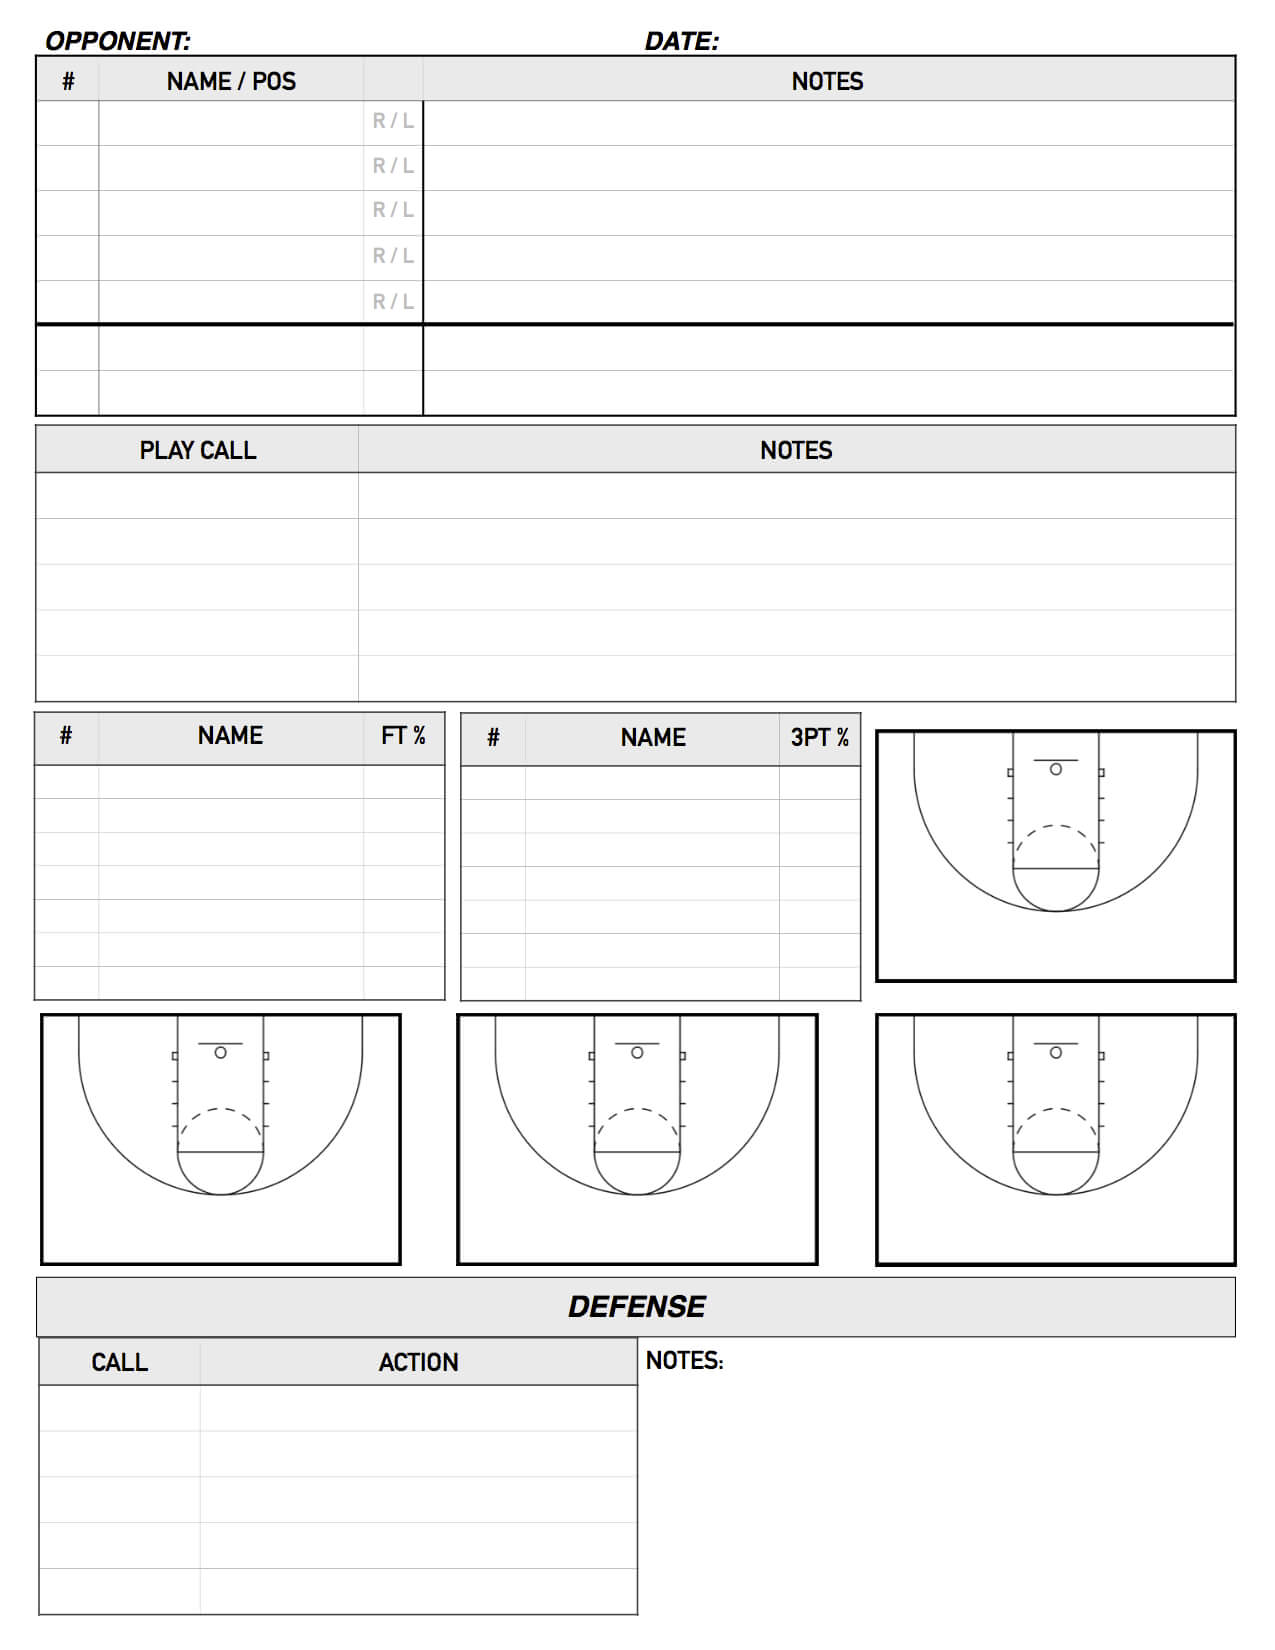 Report Examples College Basketball Scouting Template Team Throughout Scouting Report Template Basketball